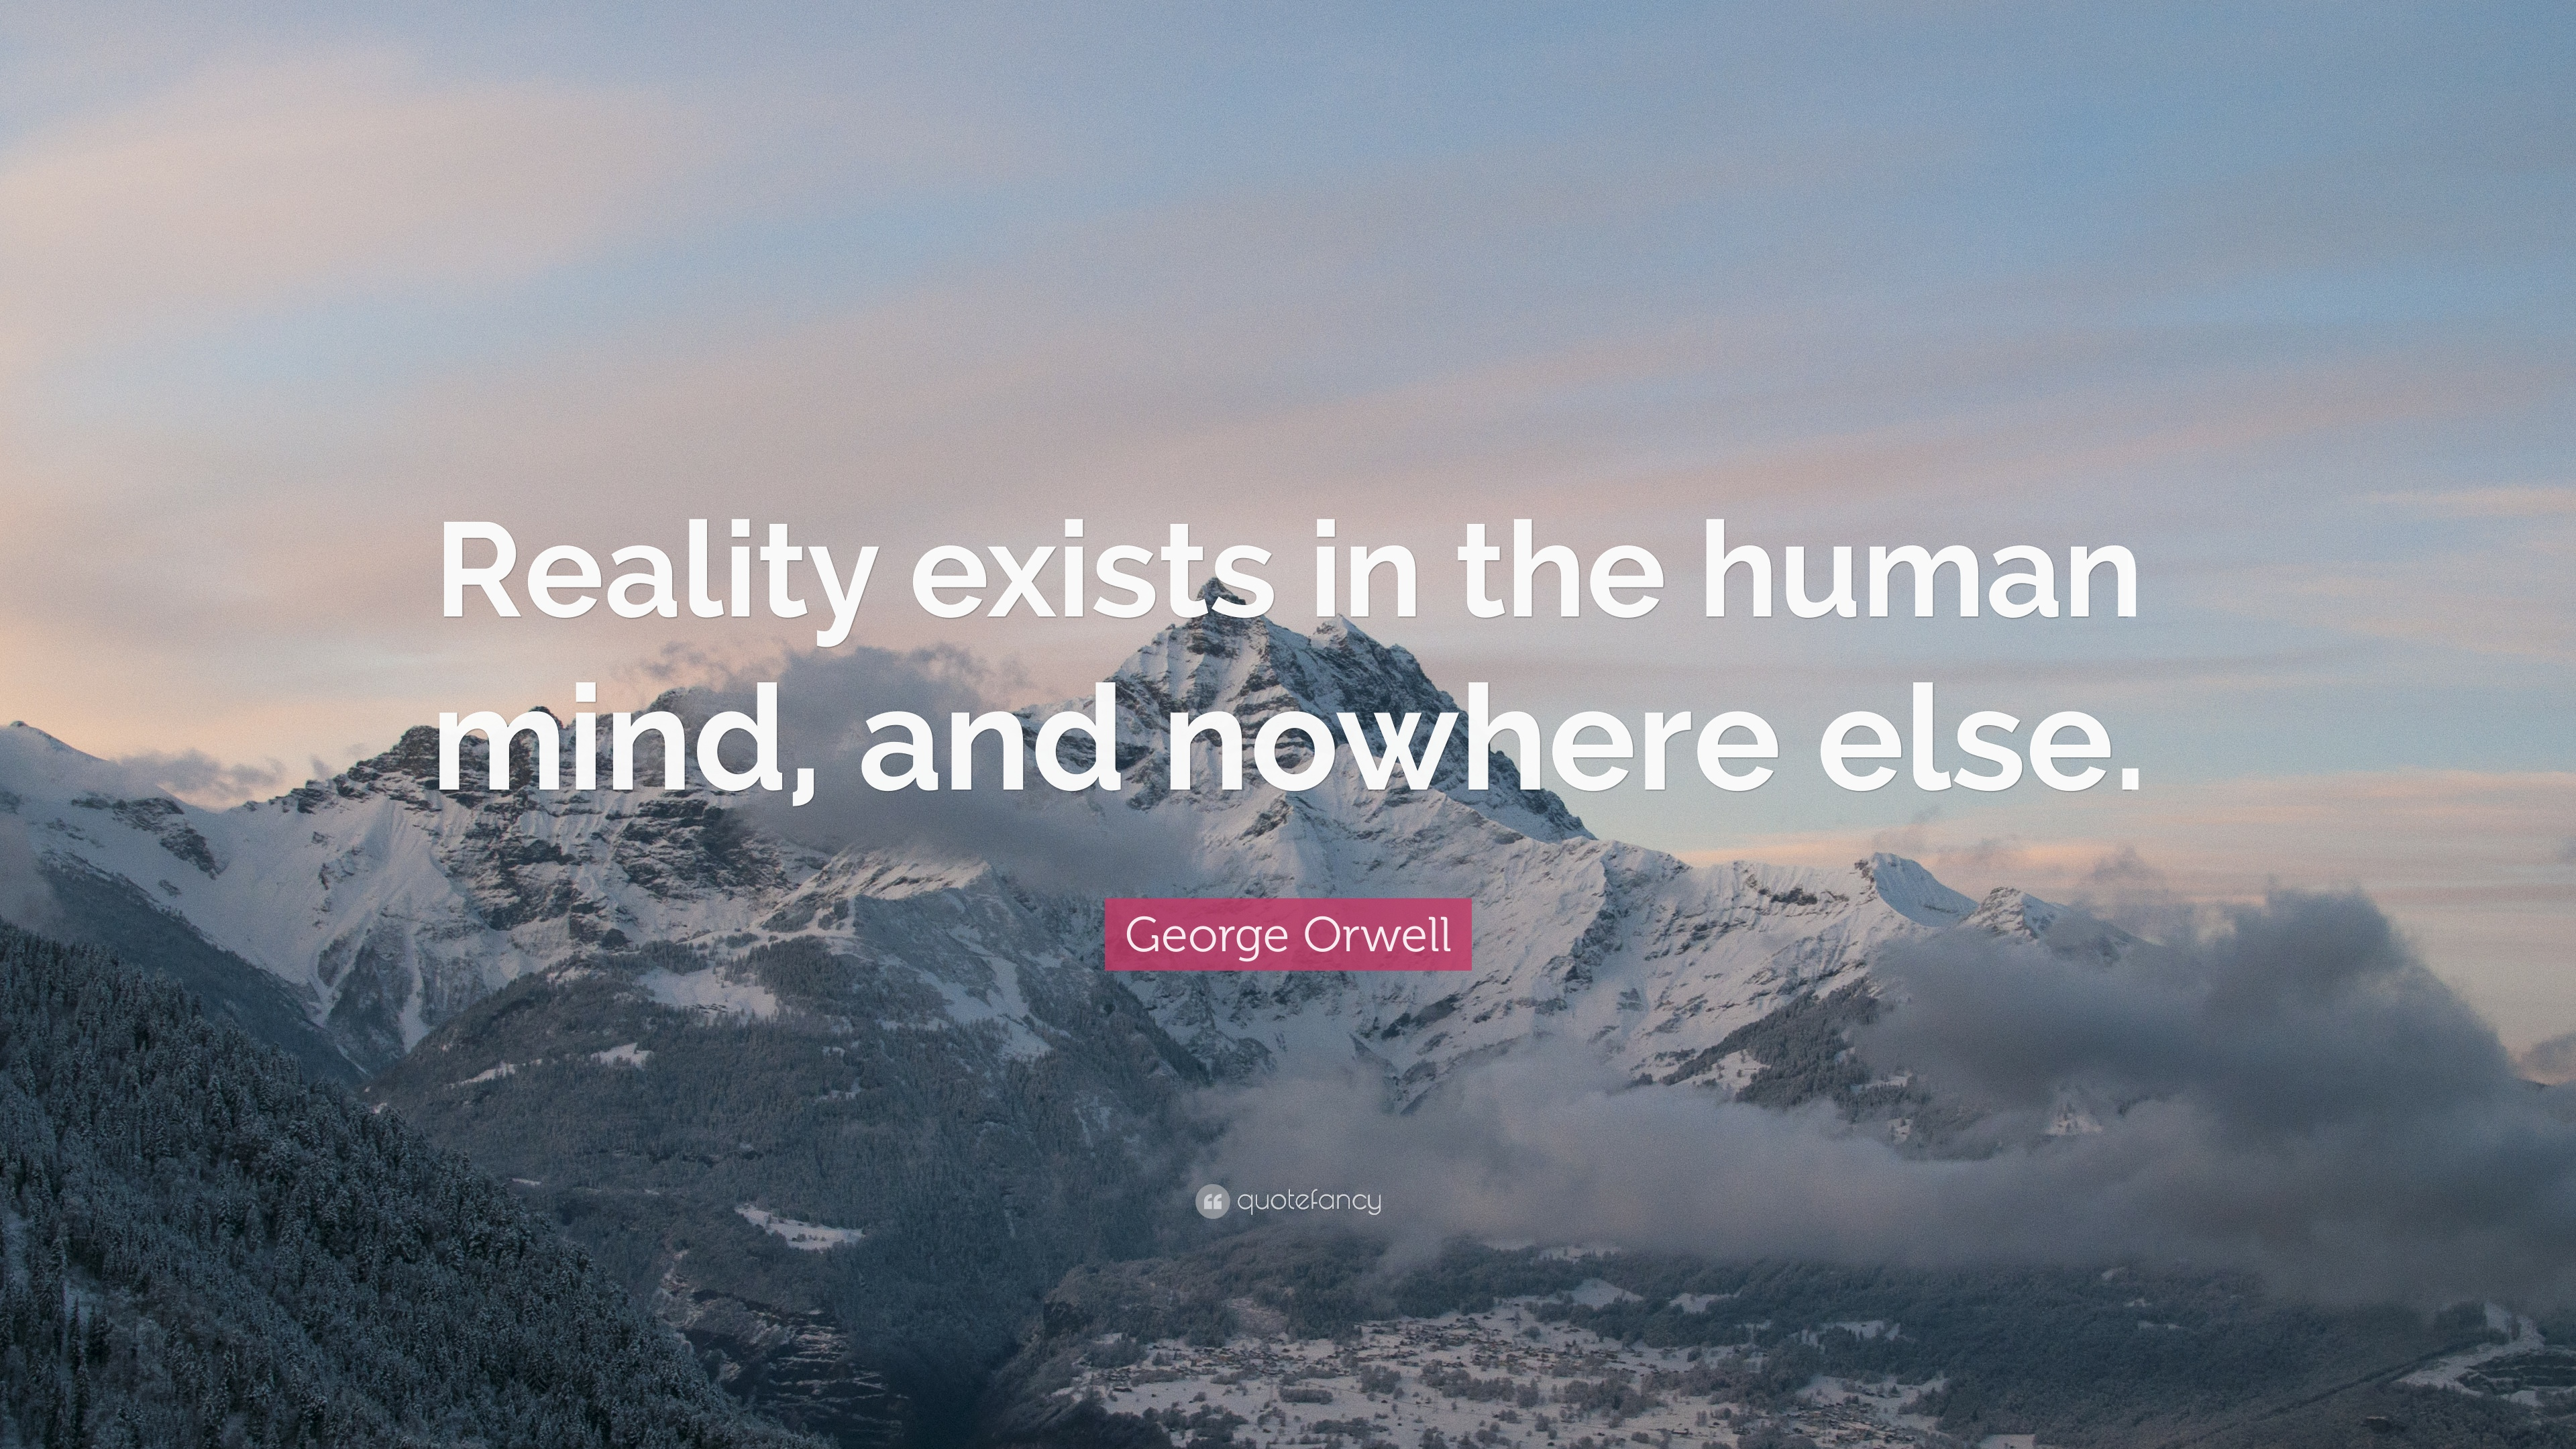 """george orwell essay about human imperfection Free-response questions george orwell uses the example of gandhi to make an argument for choosing human imperfection over """"sainthood."""